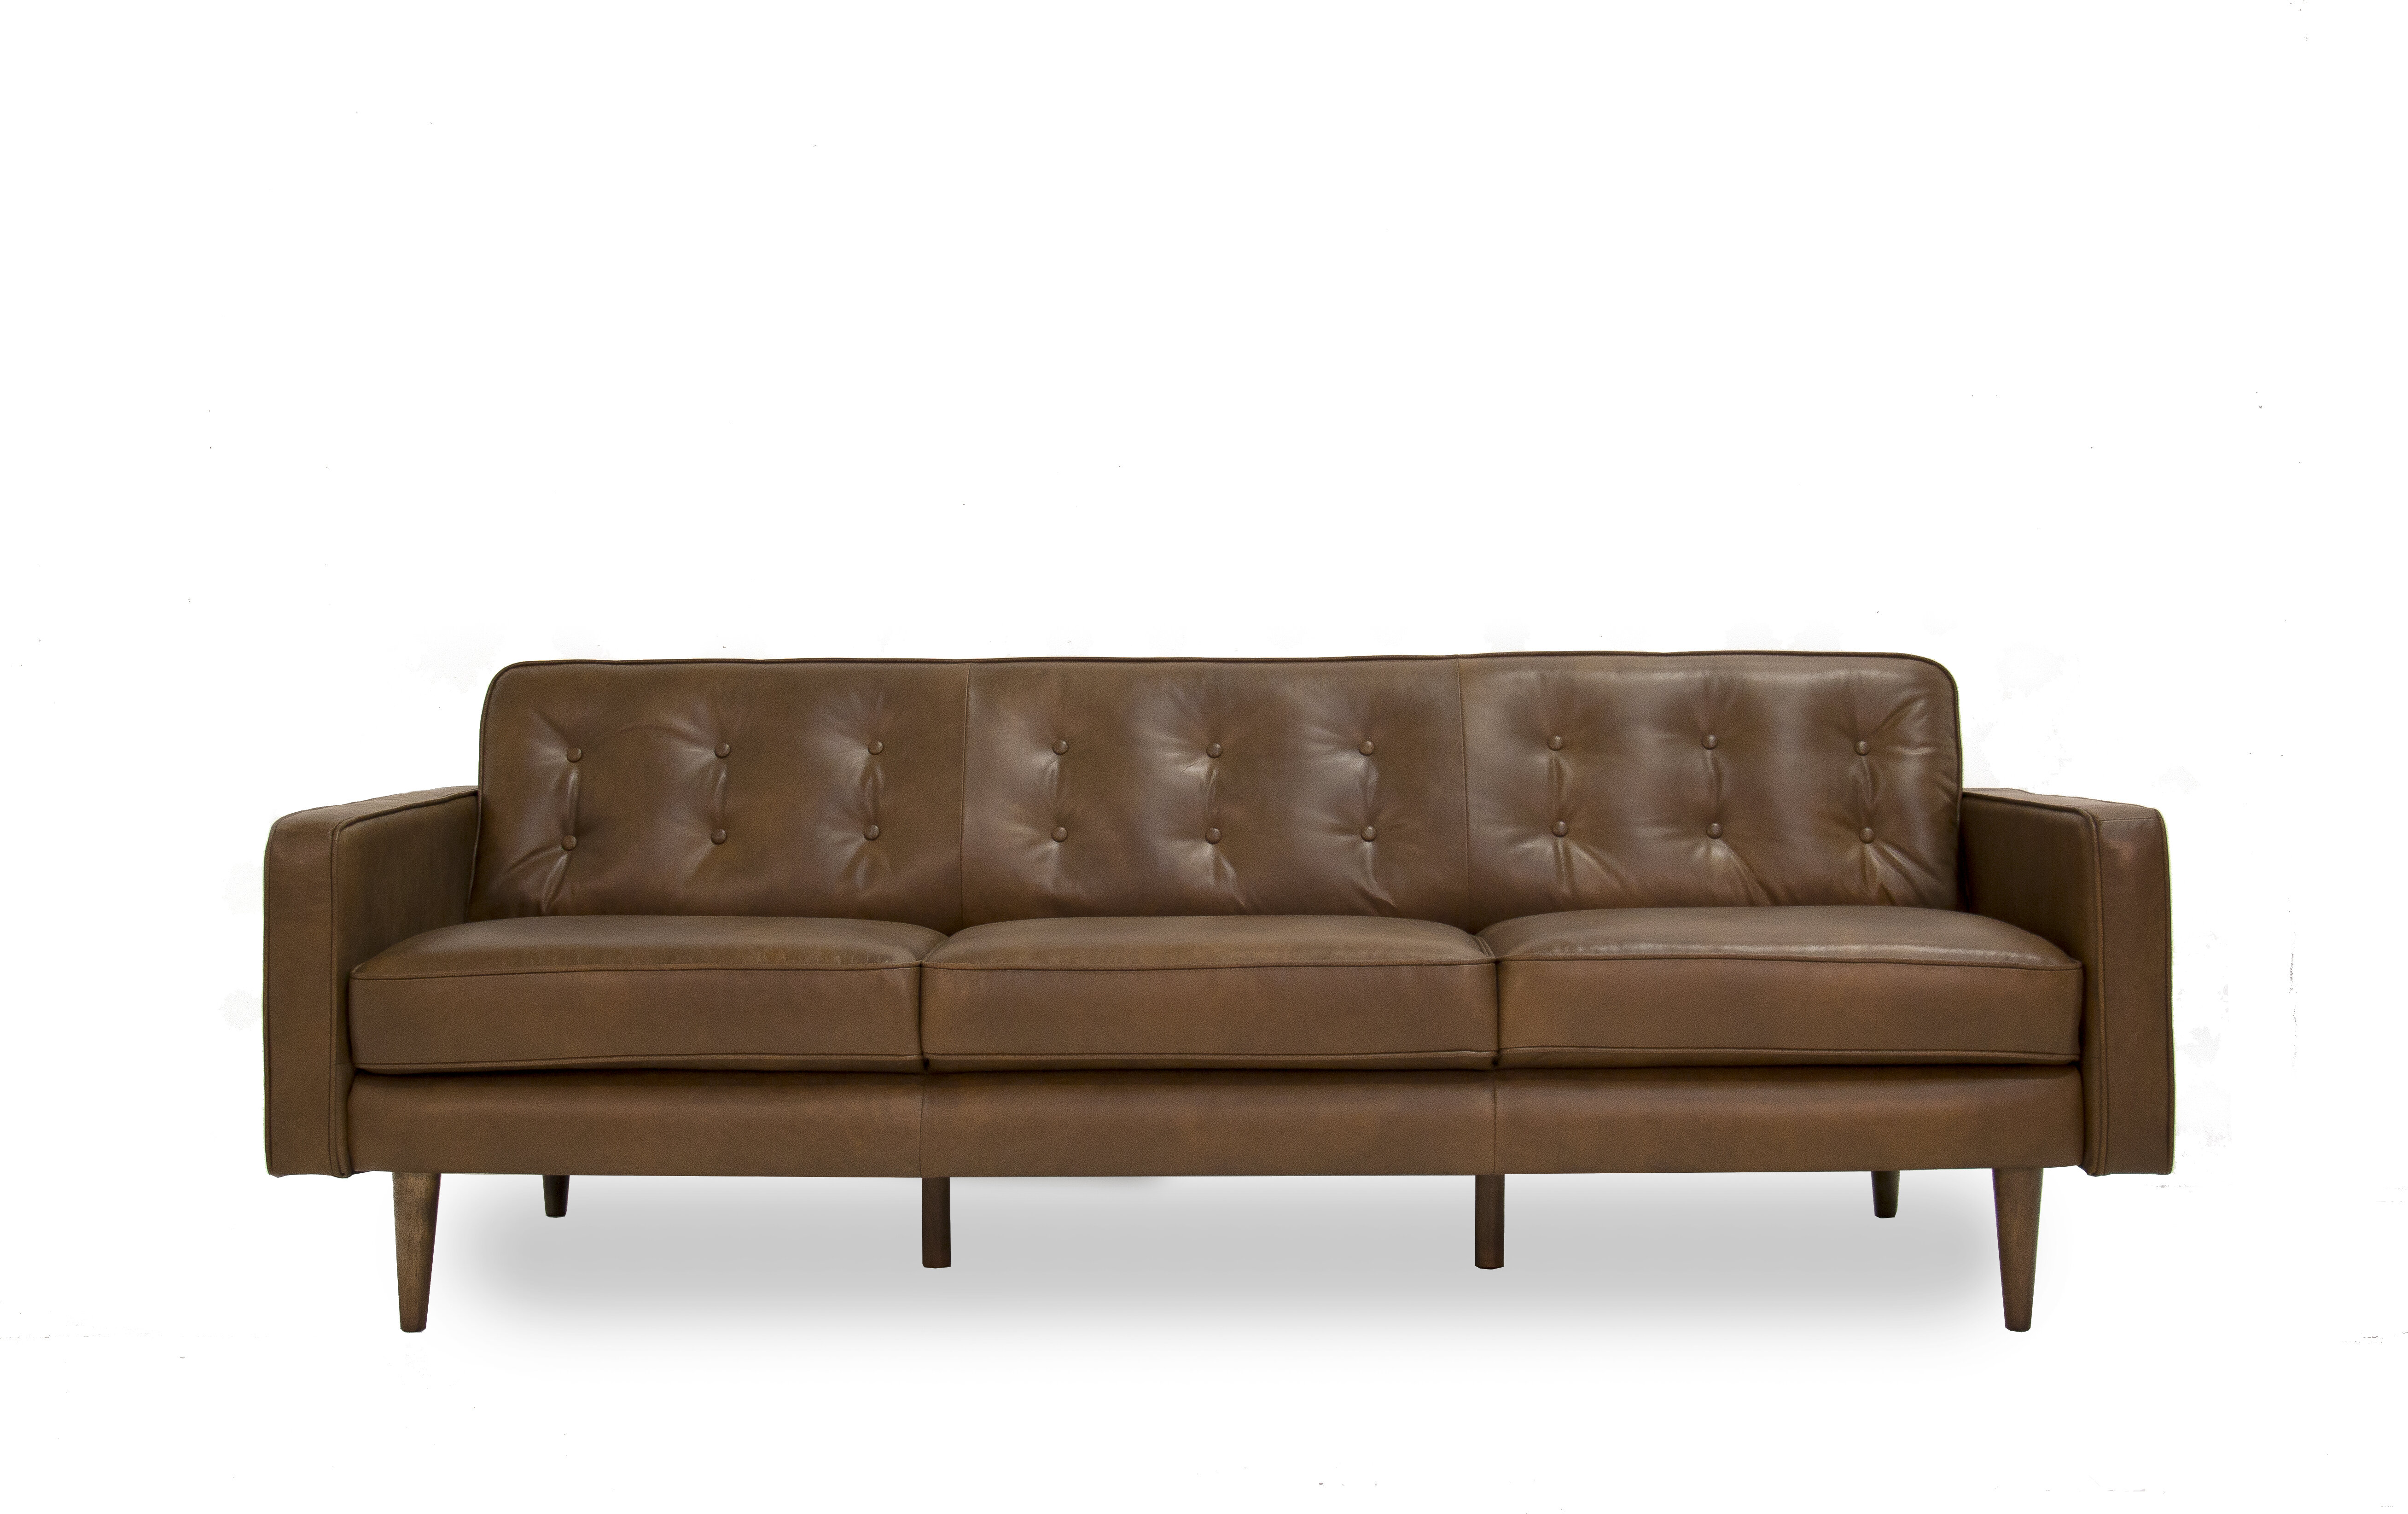 Corrigan Studio Trevor Mid Century Modern Leather Sofa & Reviews